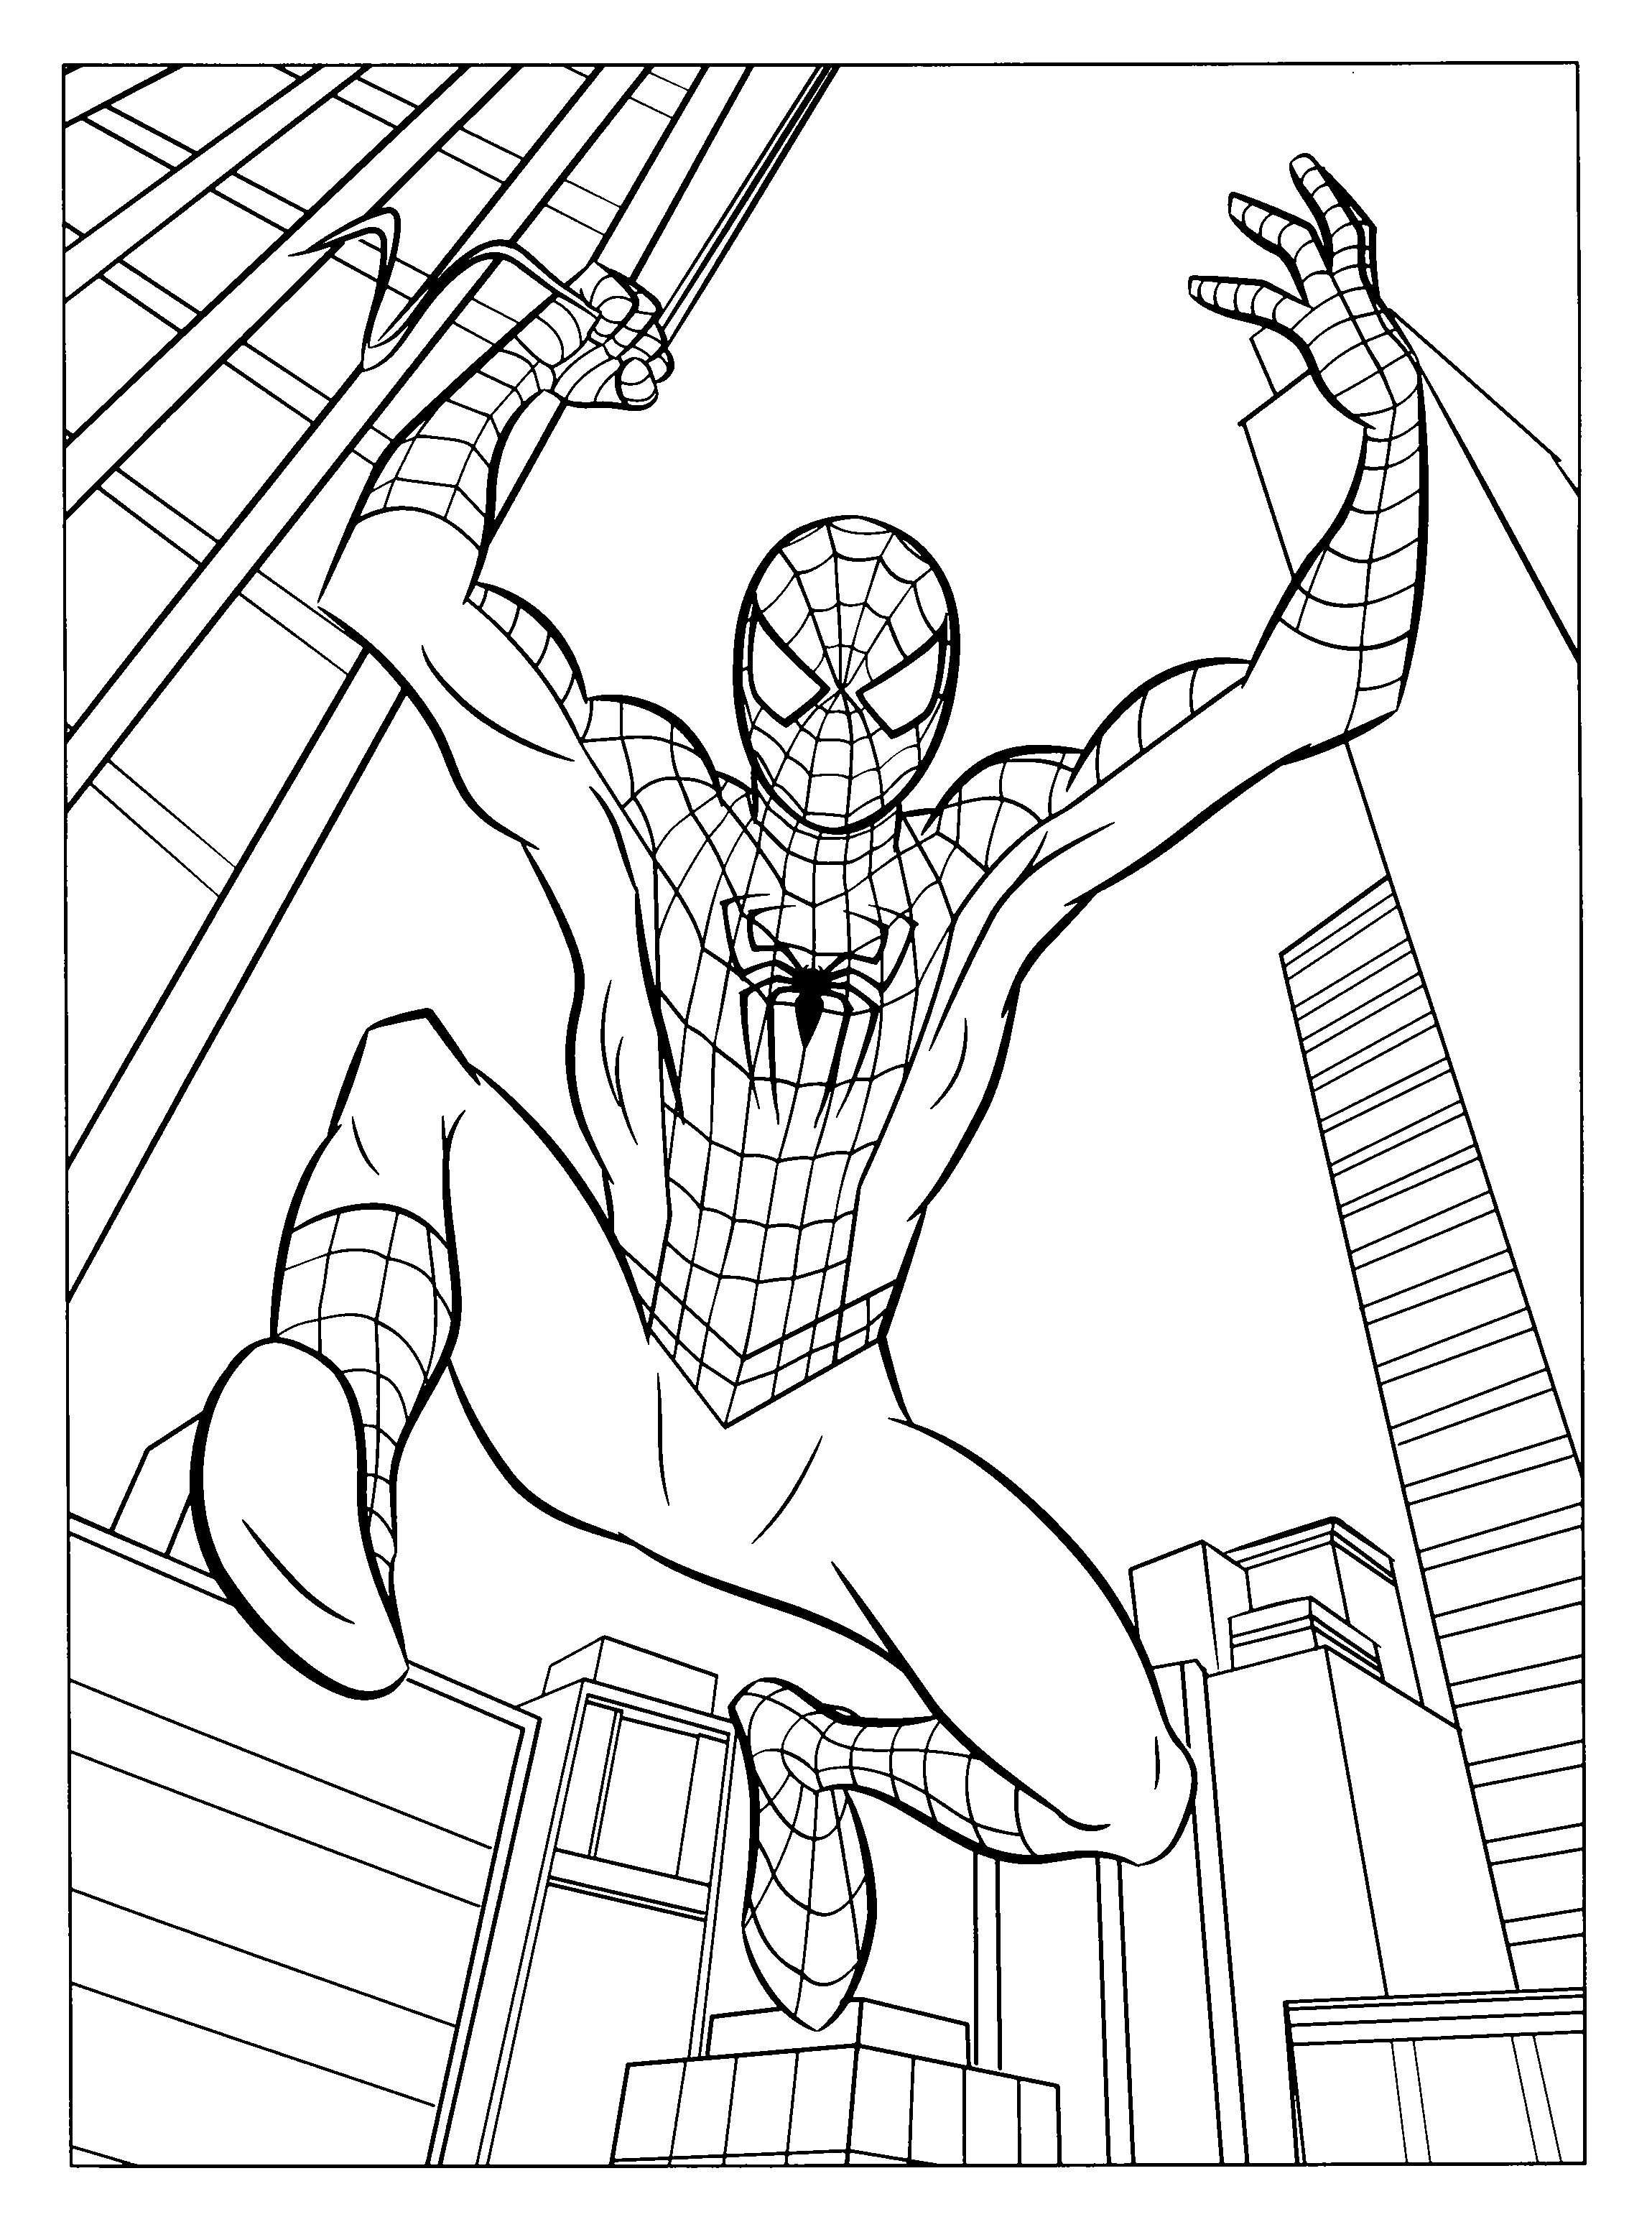 Free Printable Spiderman Coloring Pages For Kids Kleurplaten